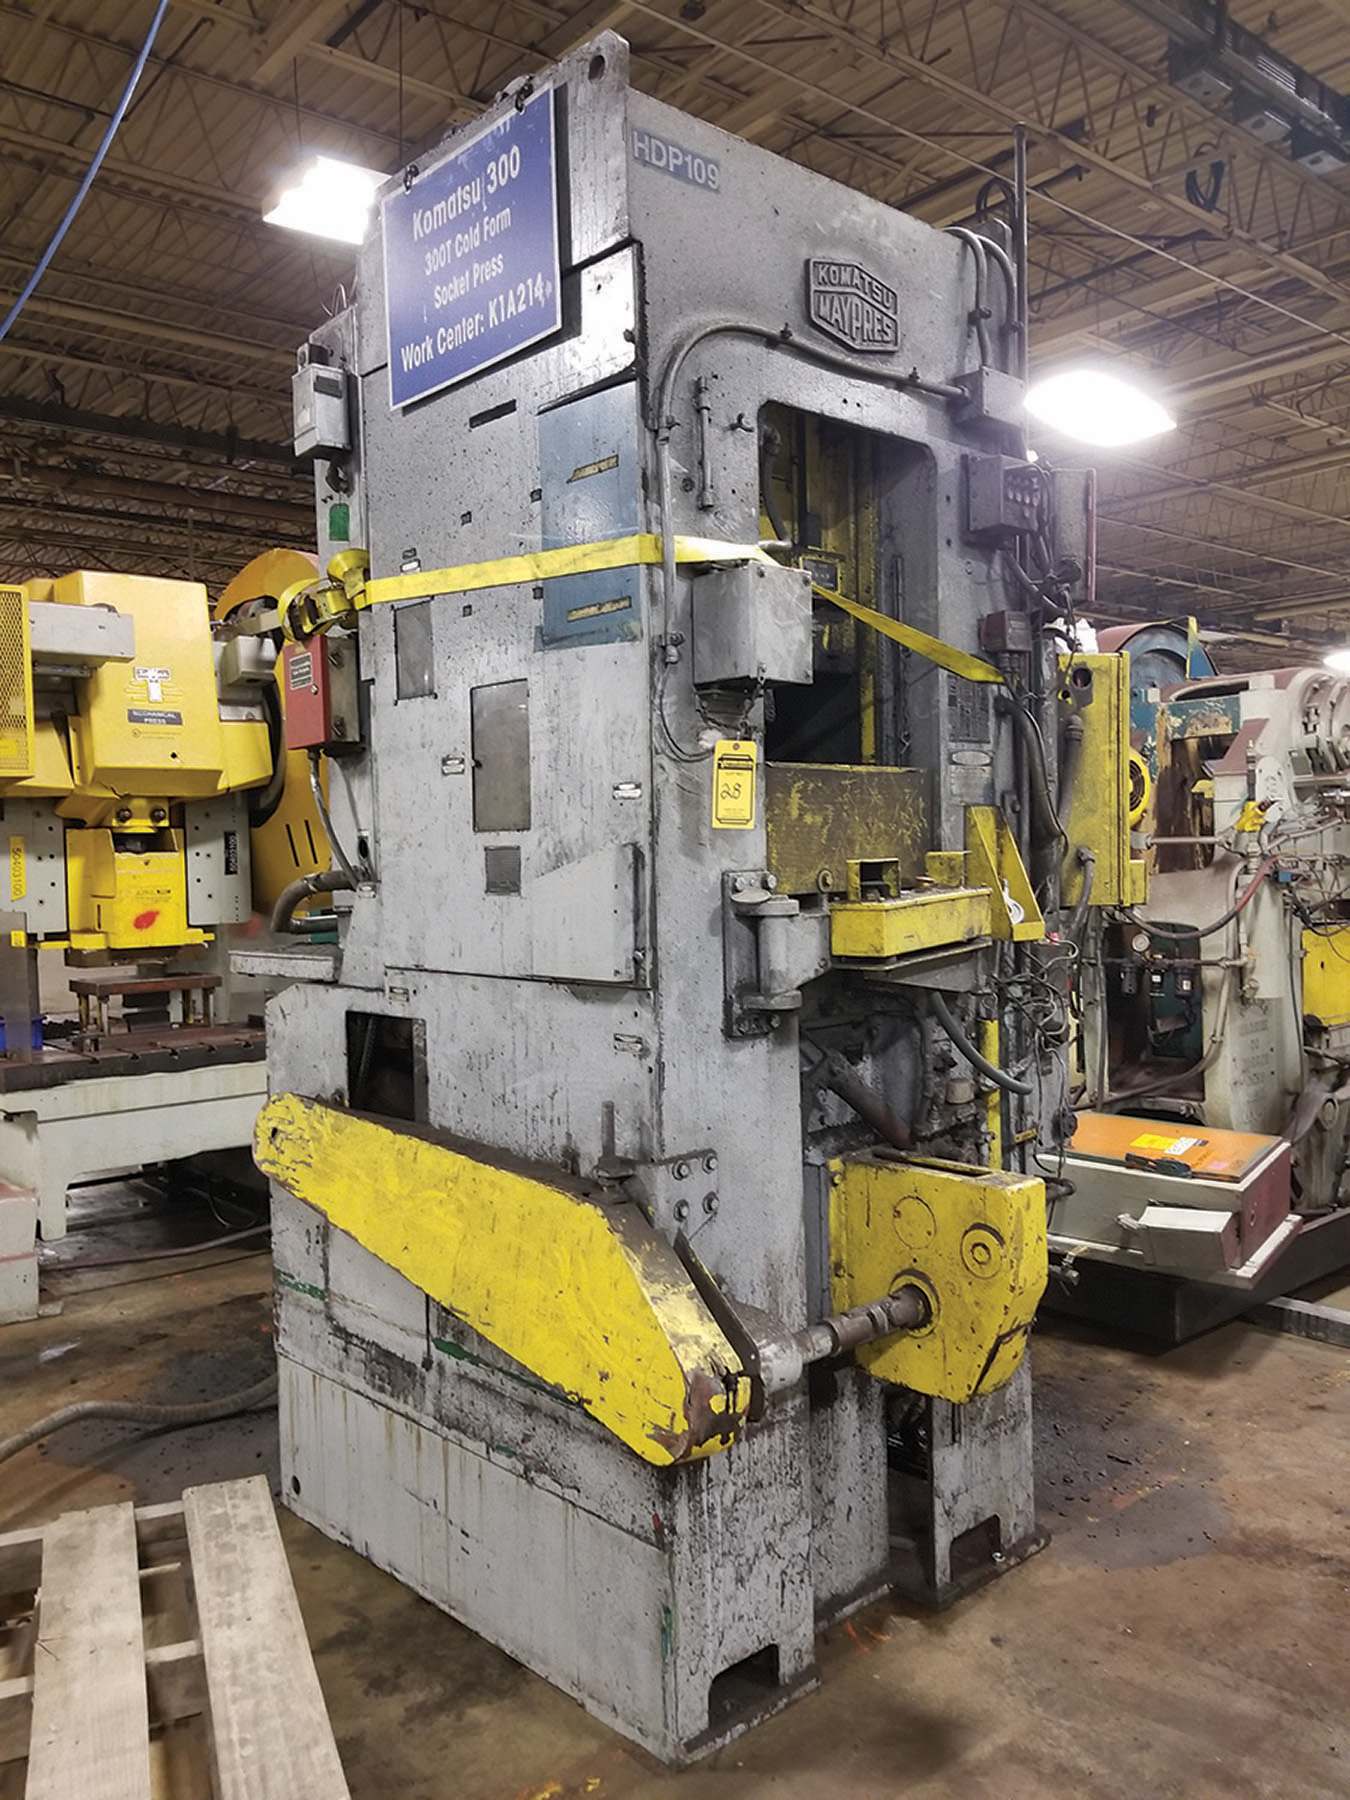 Lot 28 - KOMATSU 300-TON PRESS, 4'' SLIDE ADJUSTMENT, AIR CLUTCH/COUNTERBALANCE, WINTRISS DIPRO 1500 DIE